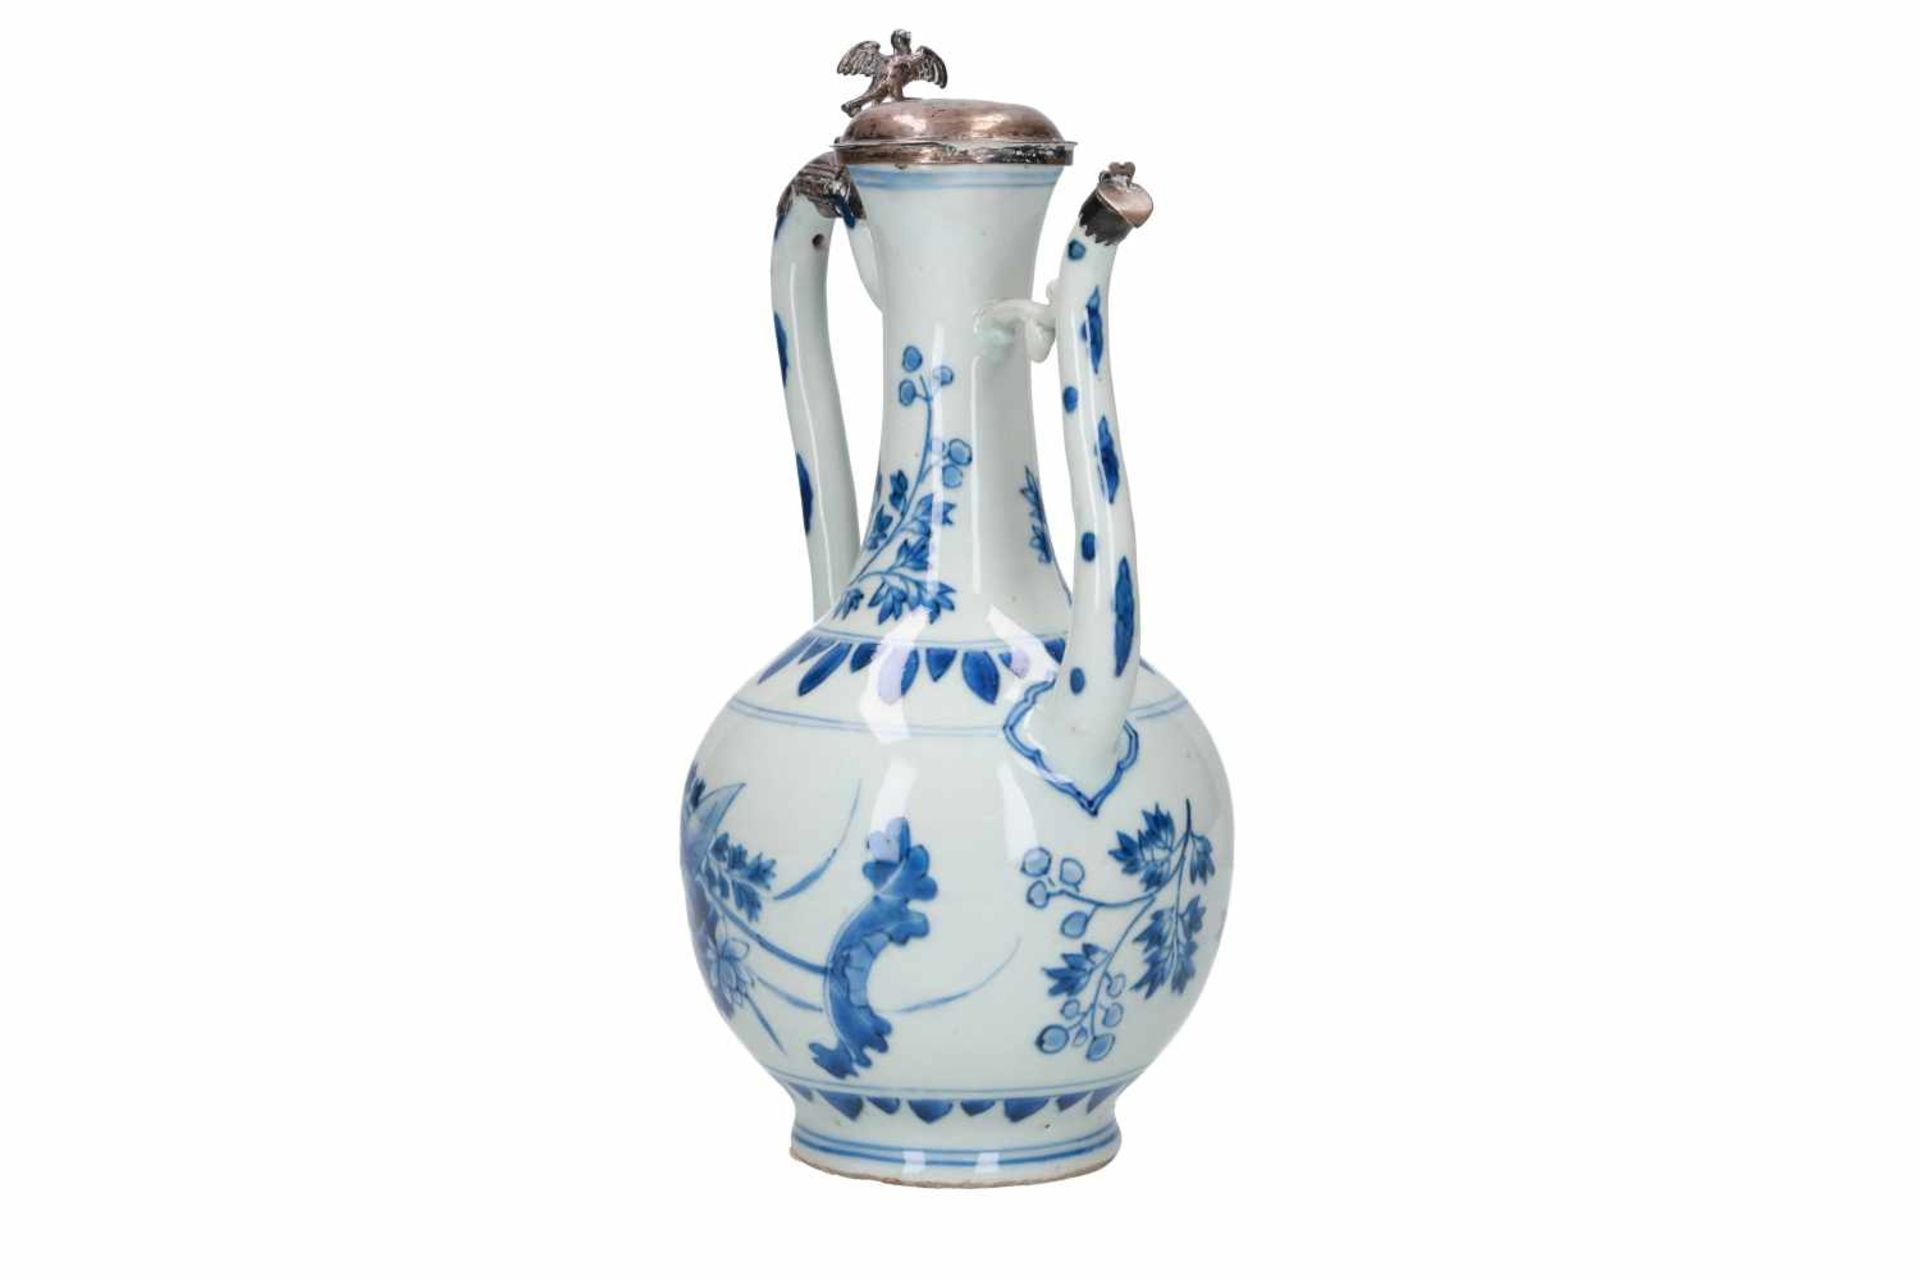 A blue and white porcelain jug with silver mounting, decorated with flowers and leaves. Unmarked. - Bild 4 aus 5